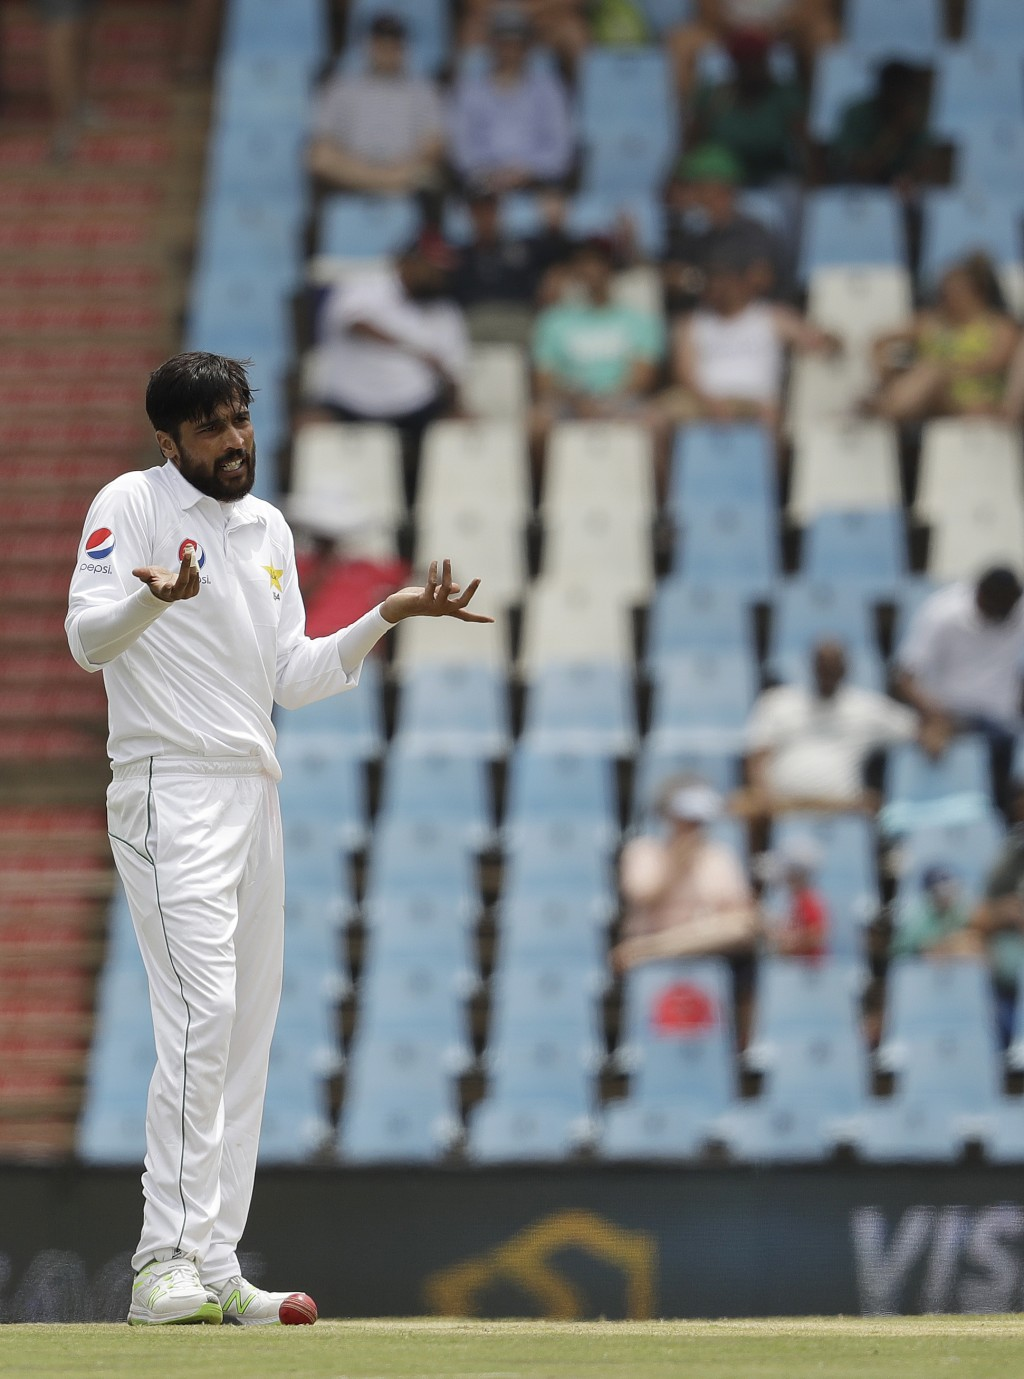 Pakistan's bowler Mohammad Amir gestures to the umpire after unsuccessful appealing for LBW on day three of the first cricket test match between South